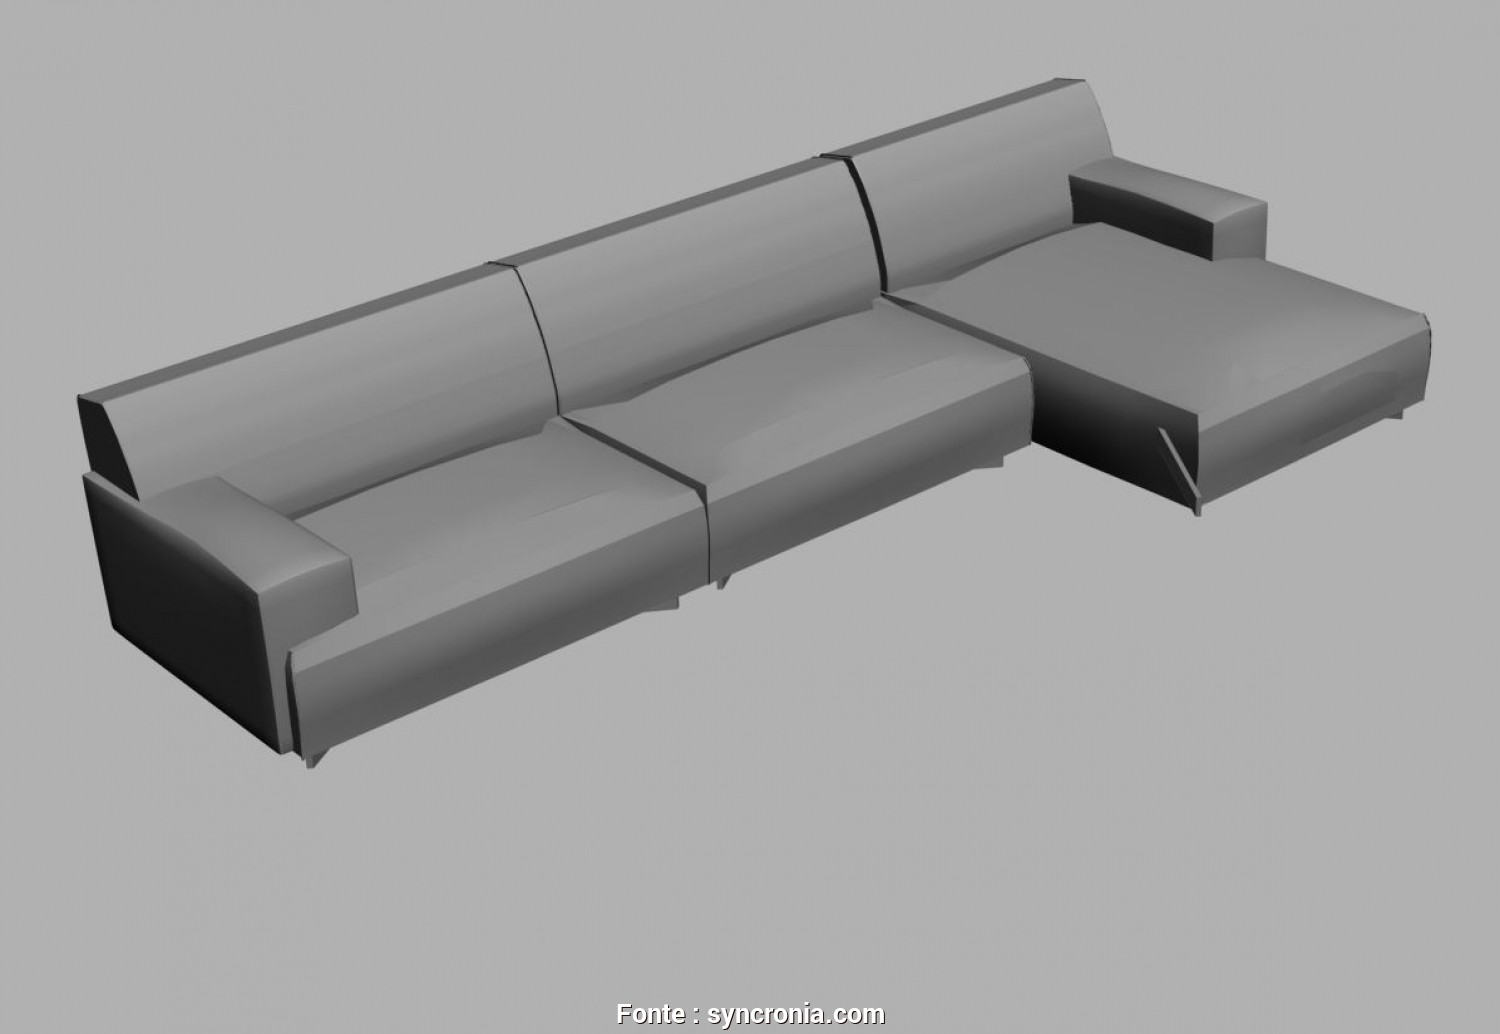 Divani In, 3D, Eccellente Download AutoCAD, Format. Download 3D Textures Show